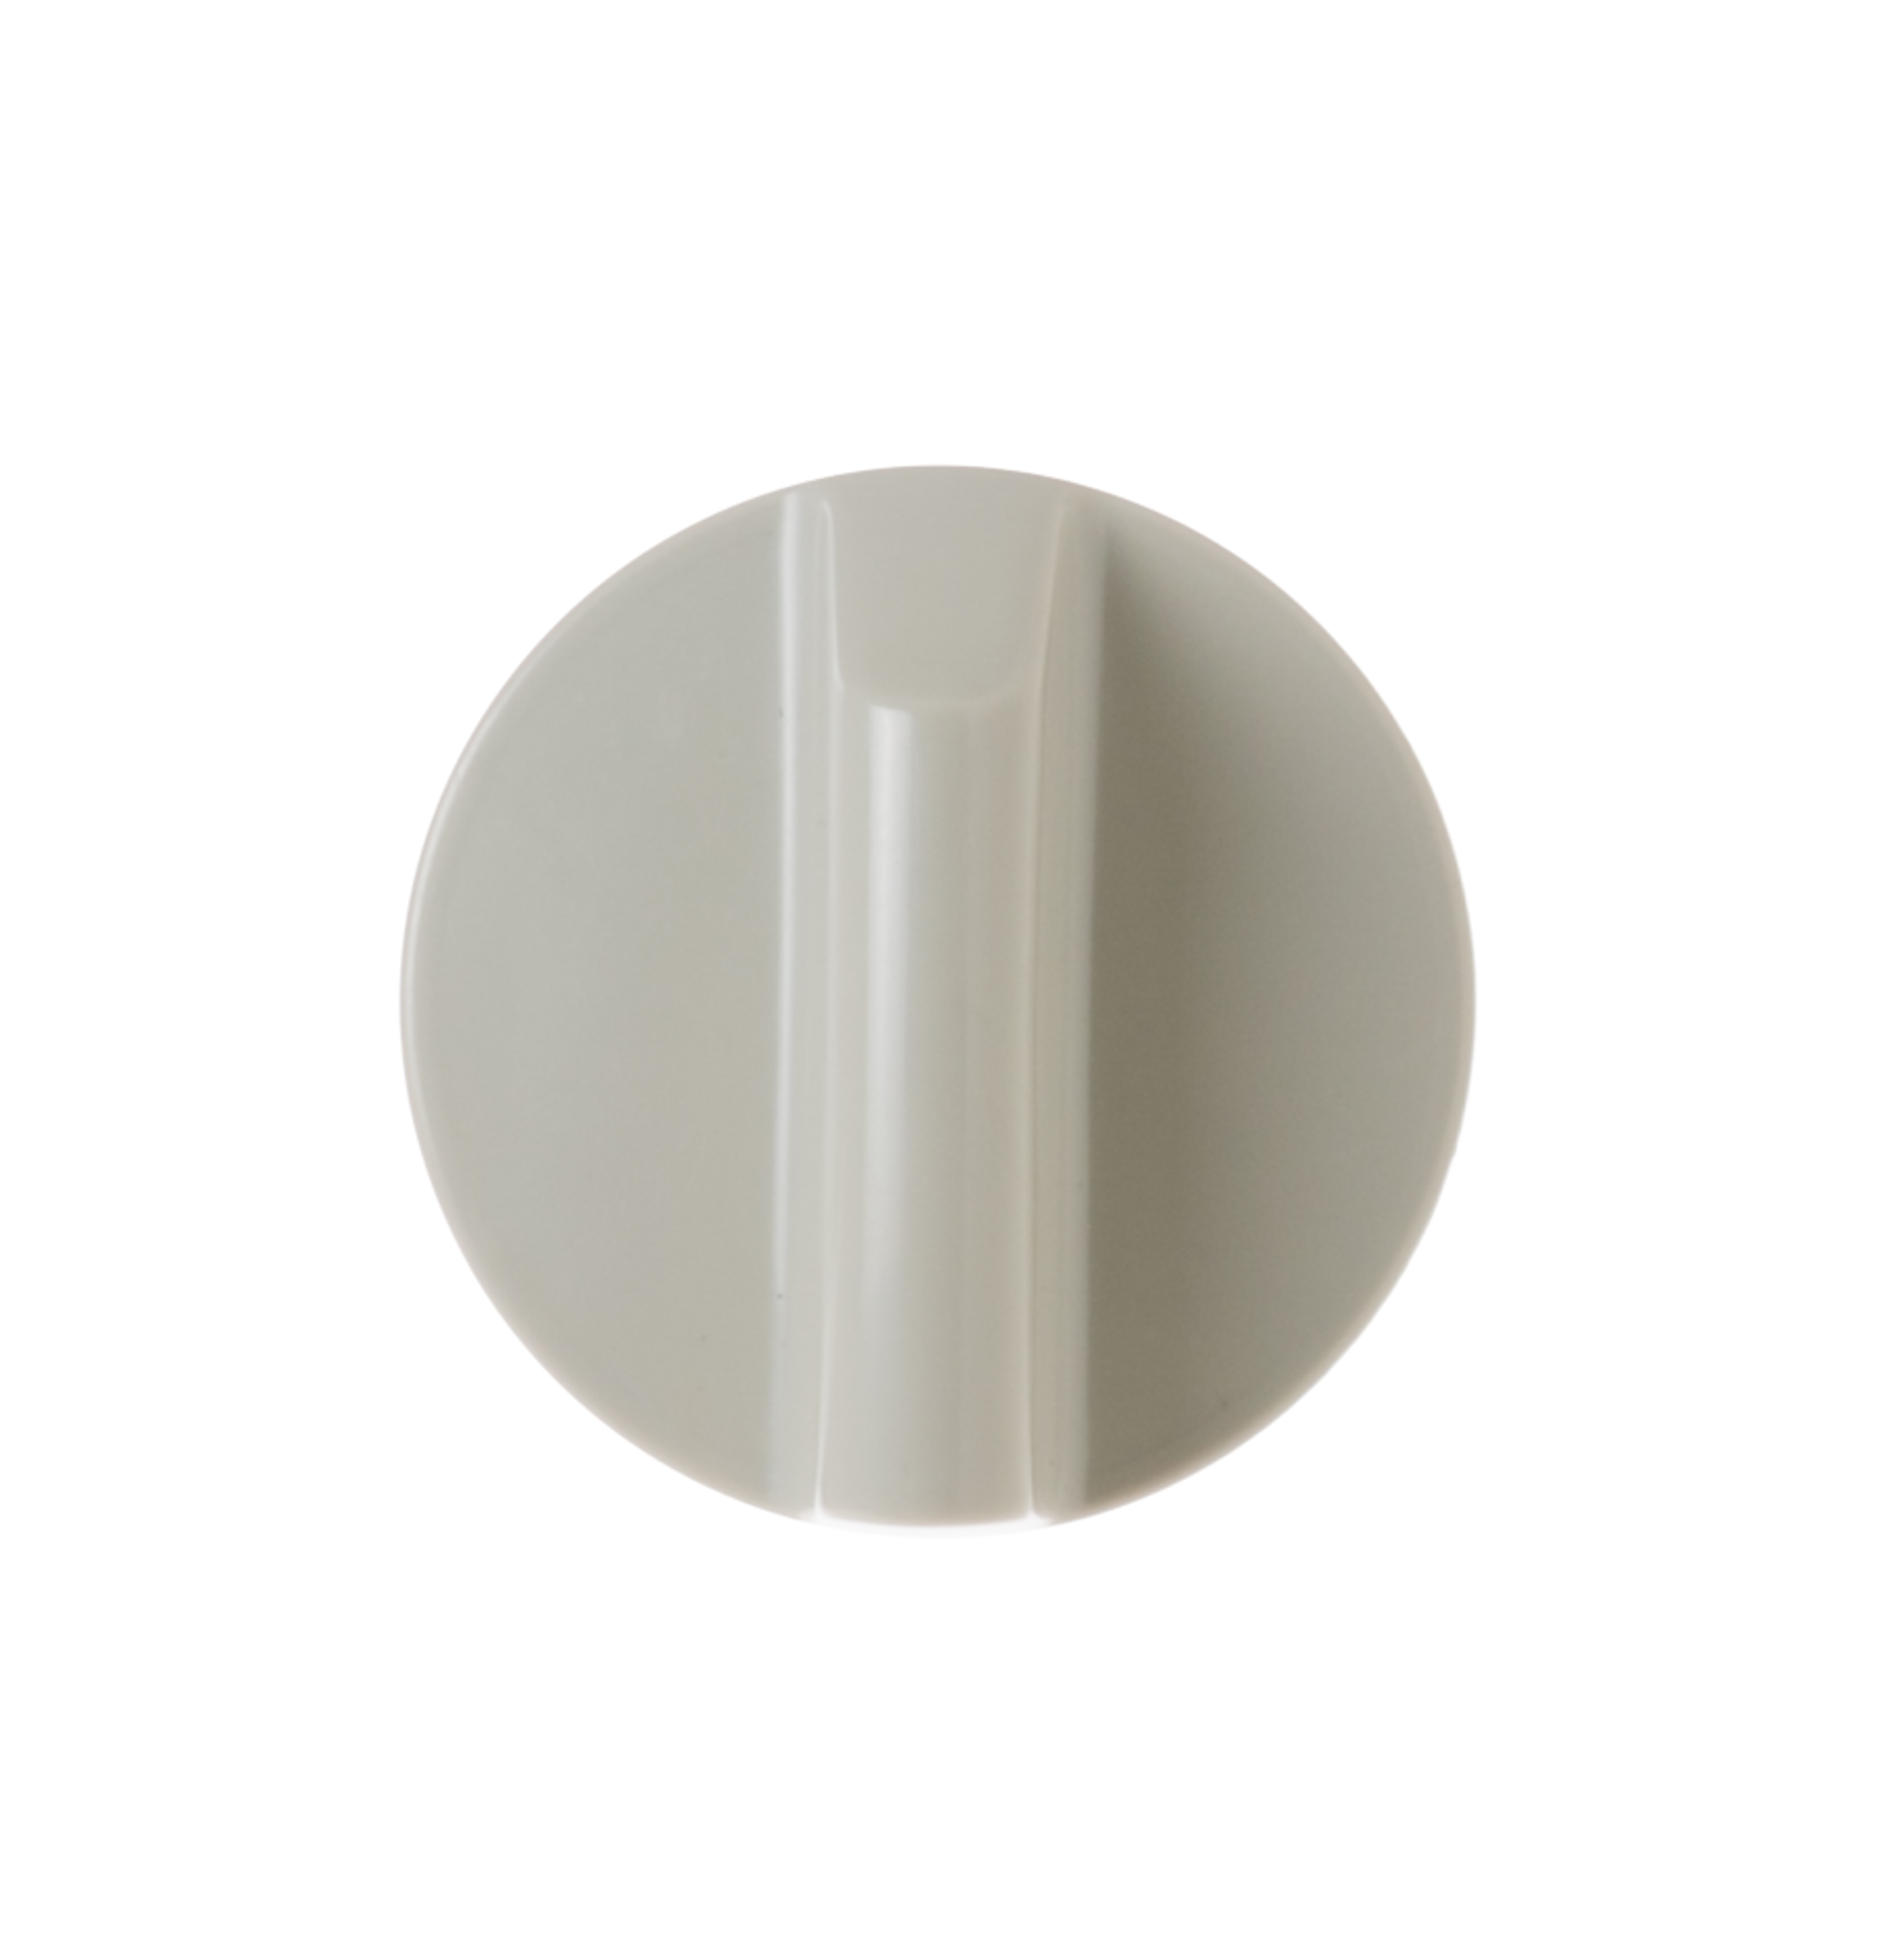 WJ12X10072 - Air Conditioner Control Knob (White) - AP3795018 PS961417